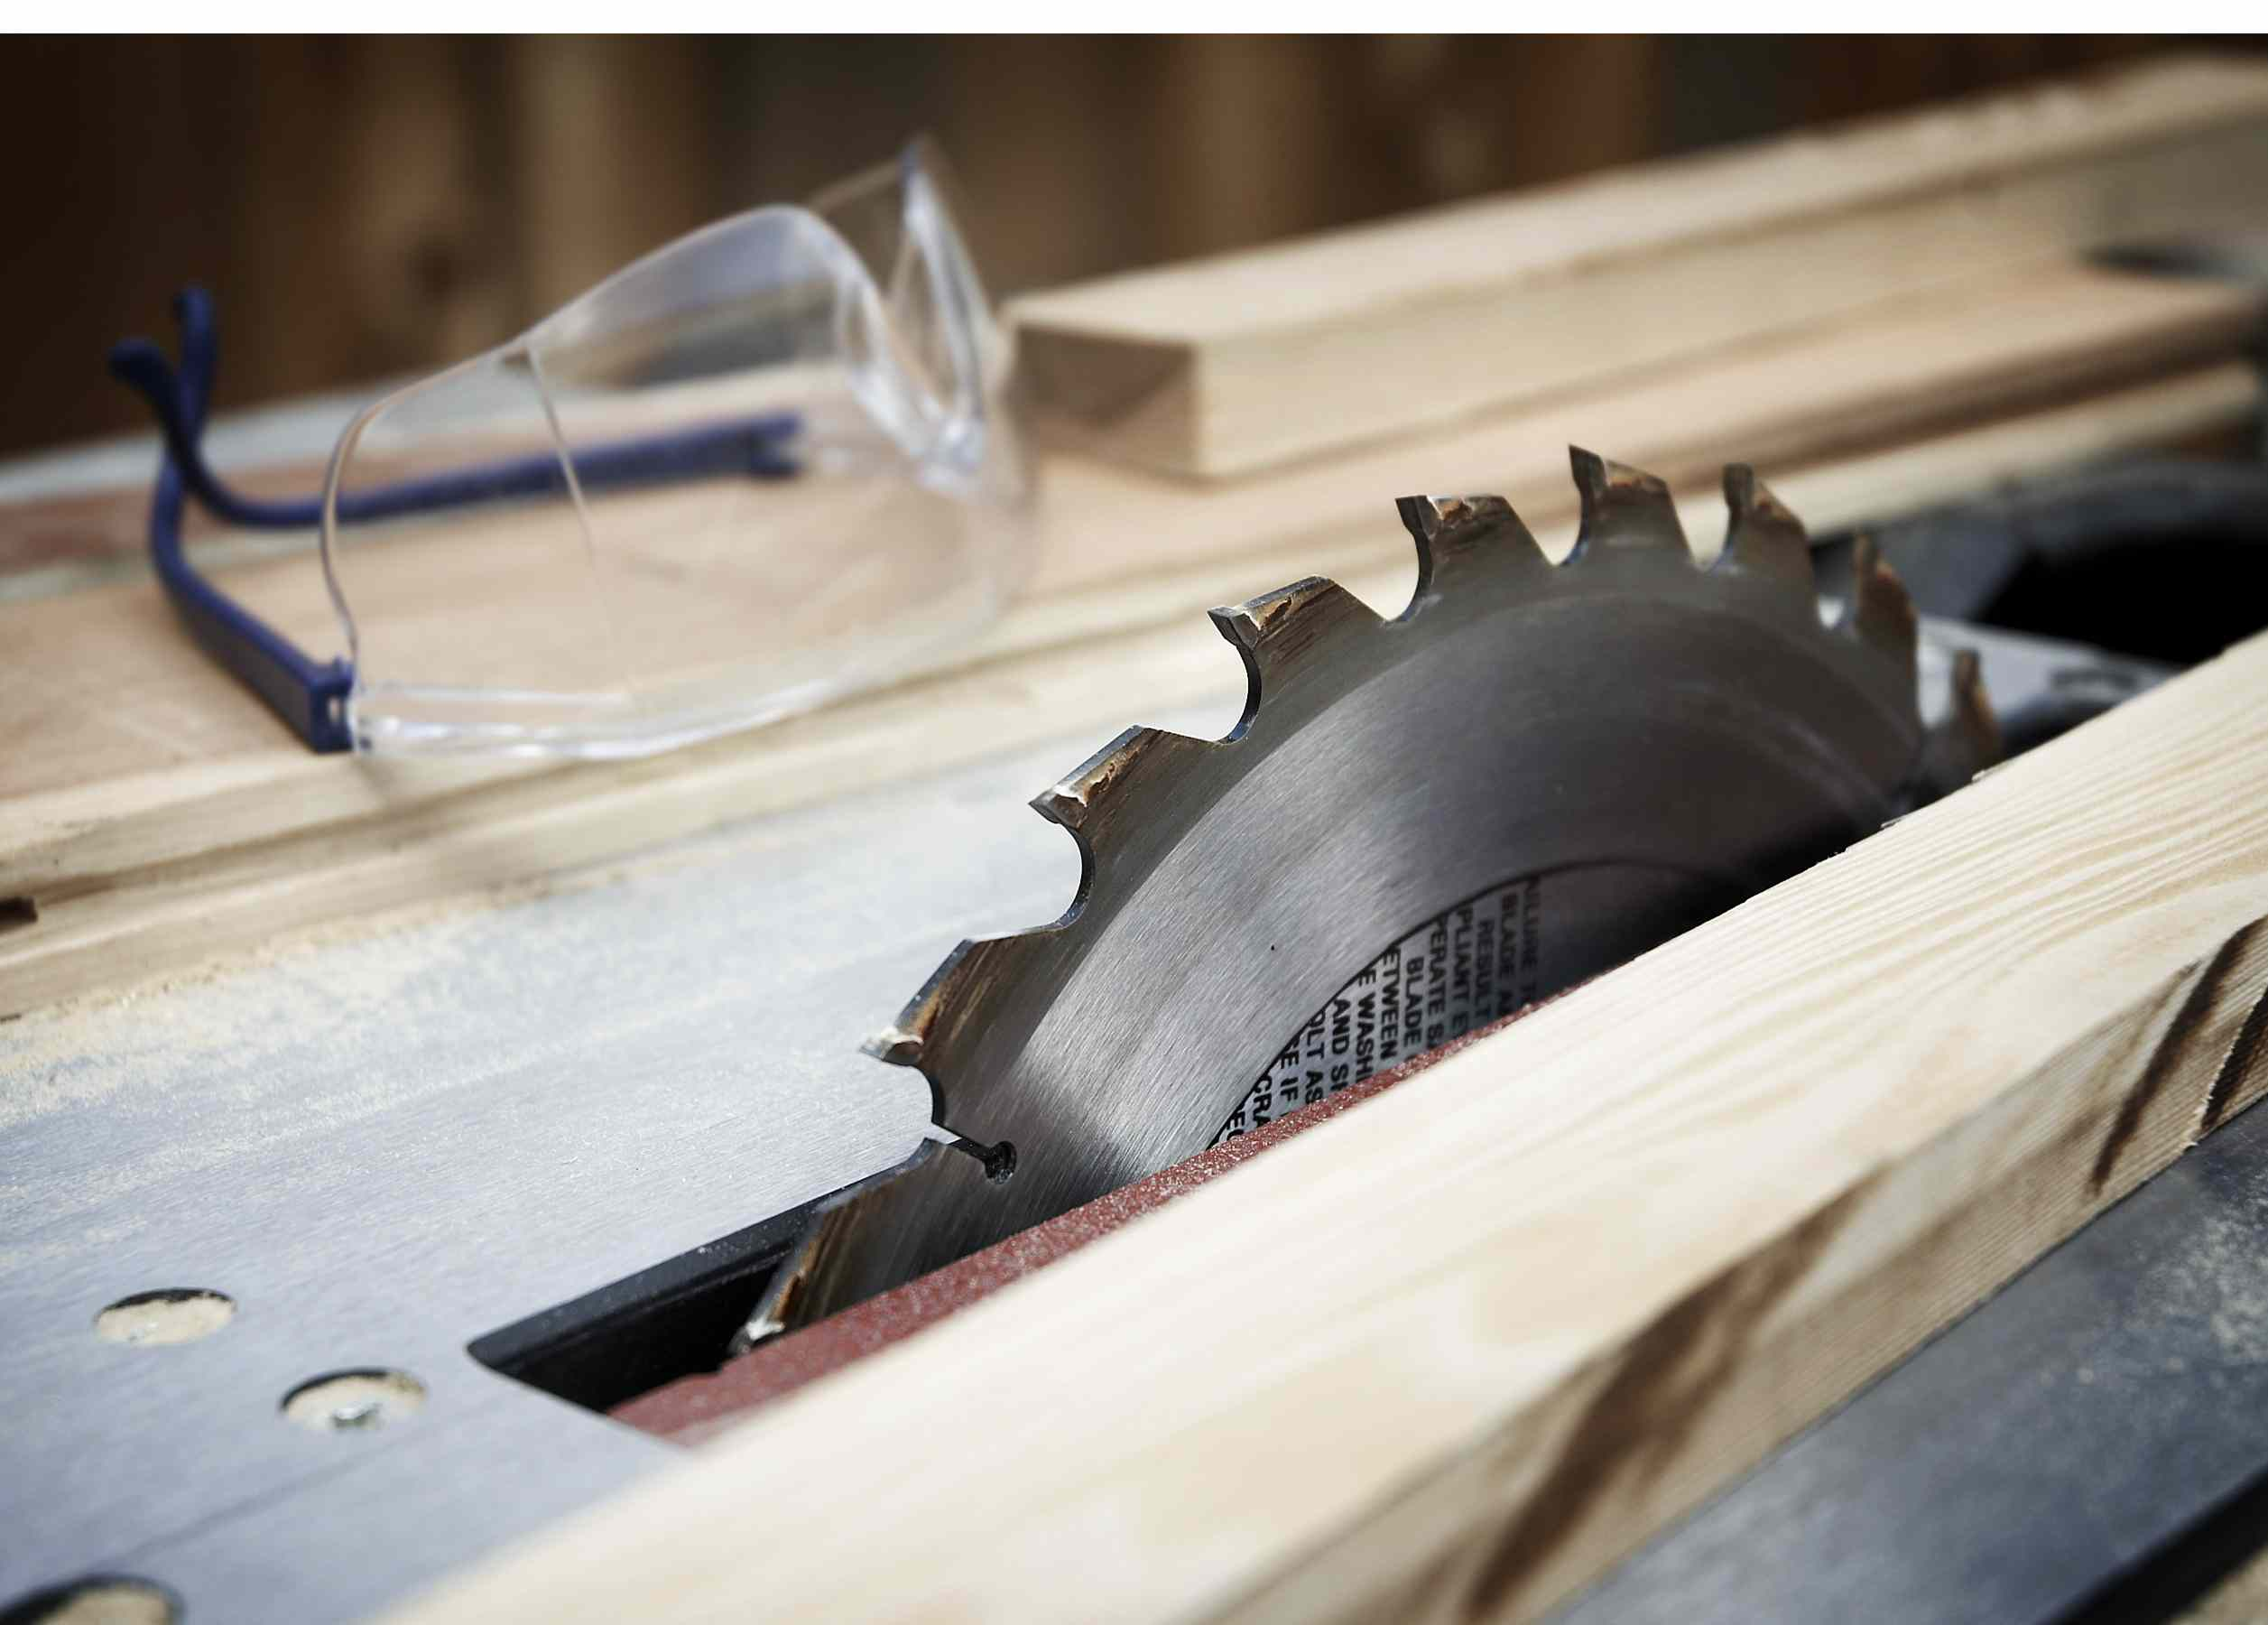 A table saw with wood and safety goggles